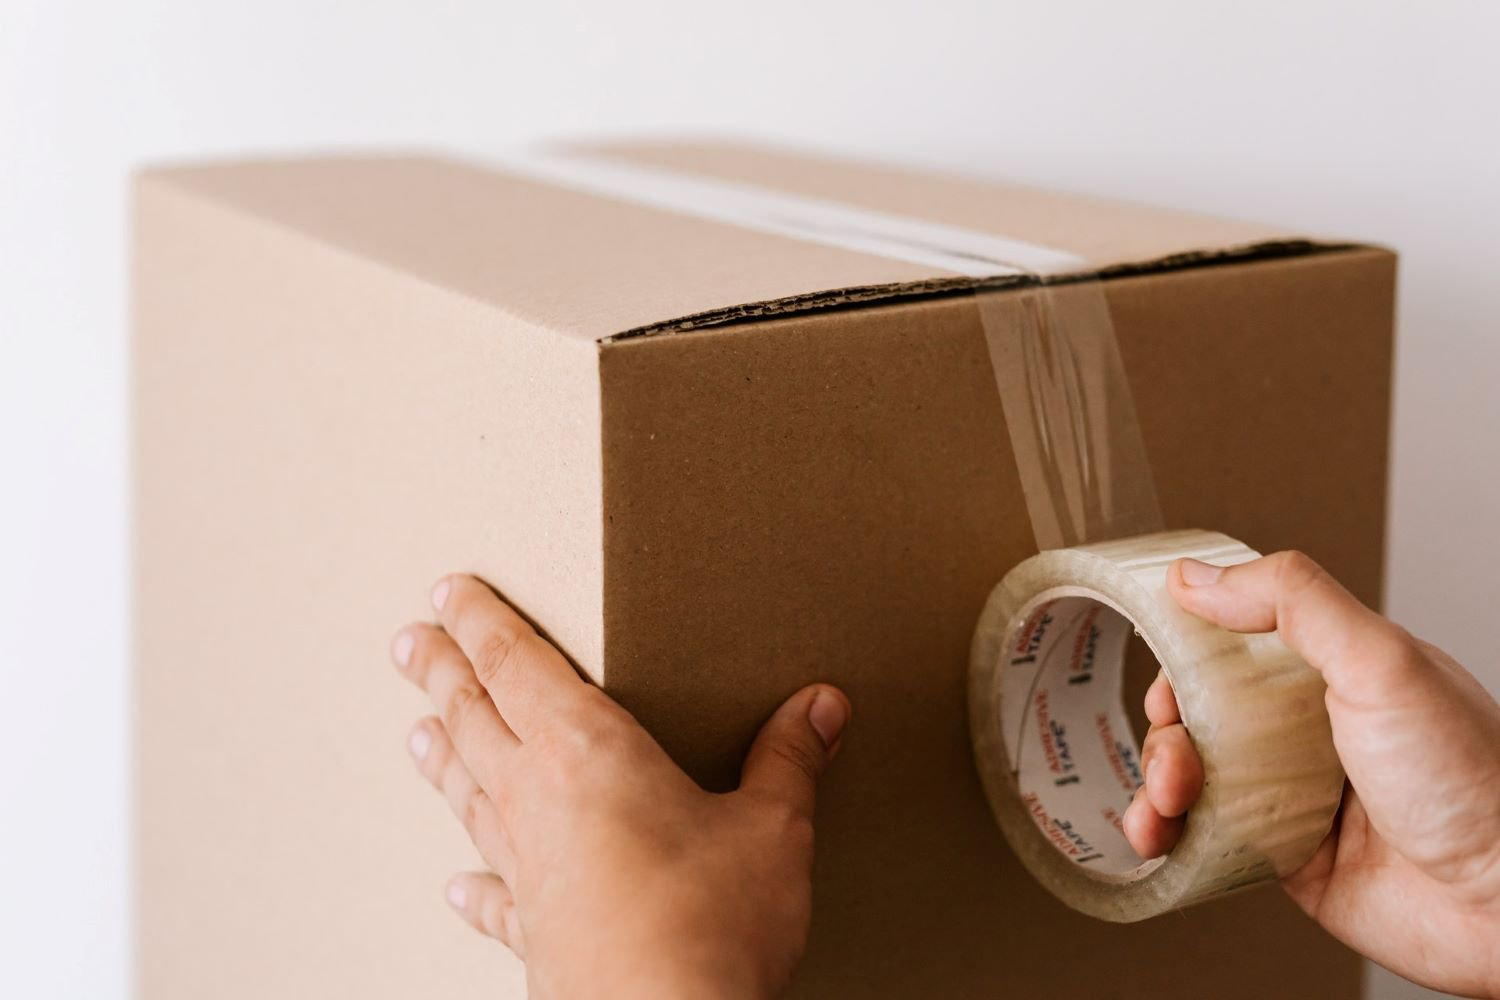 Can I Use Duct Tape Instead of Packing Tape?